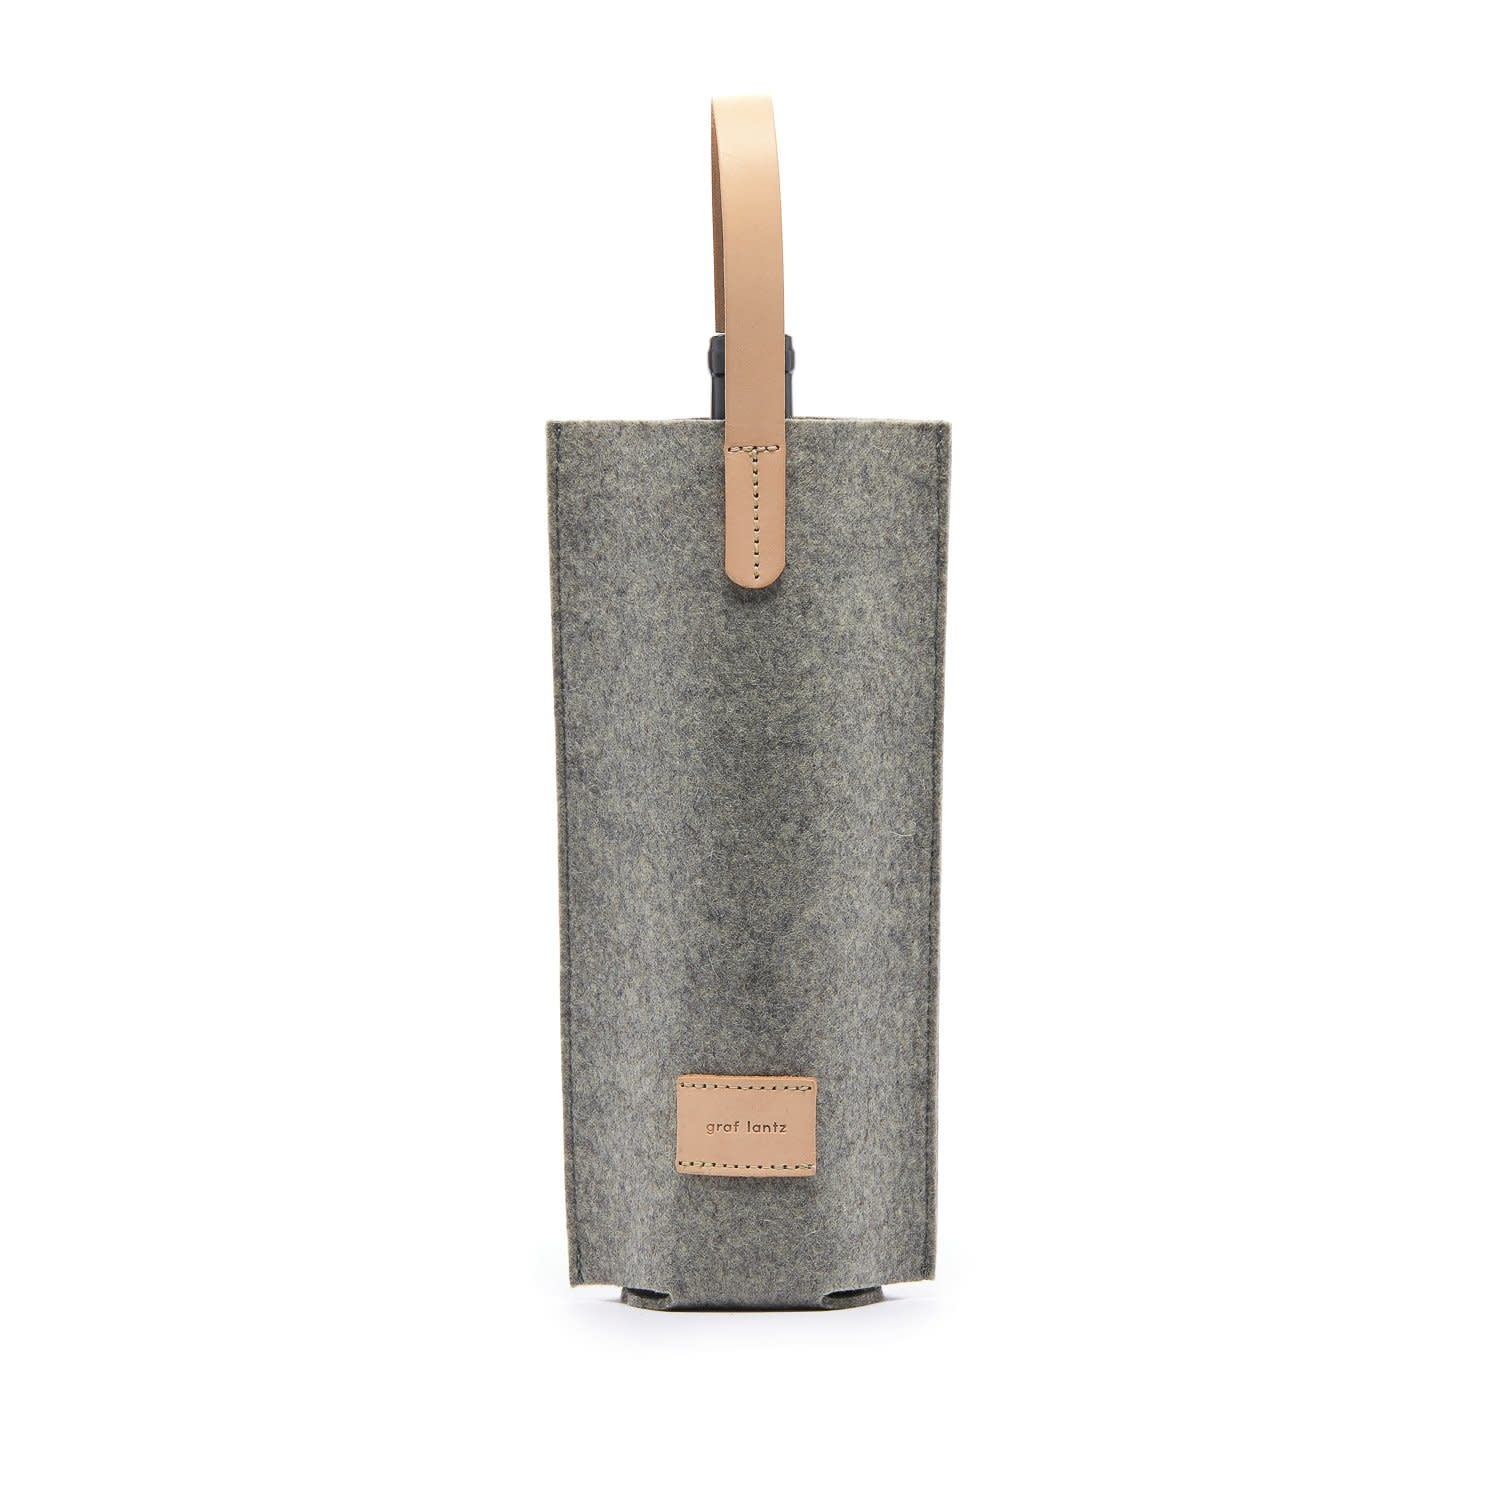 Graf and Lantz Cozy Wine Carrier